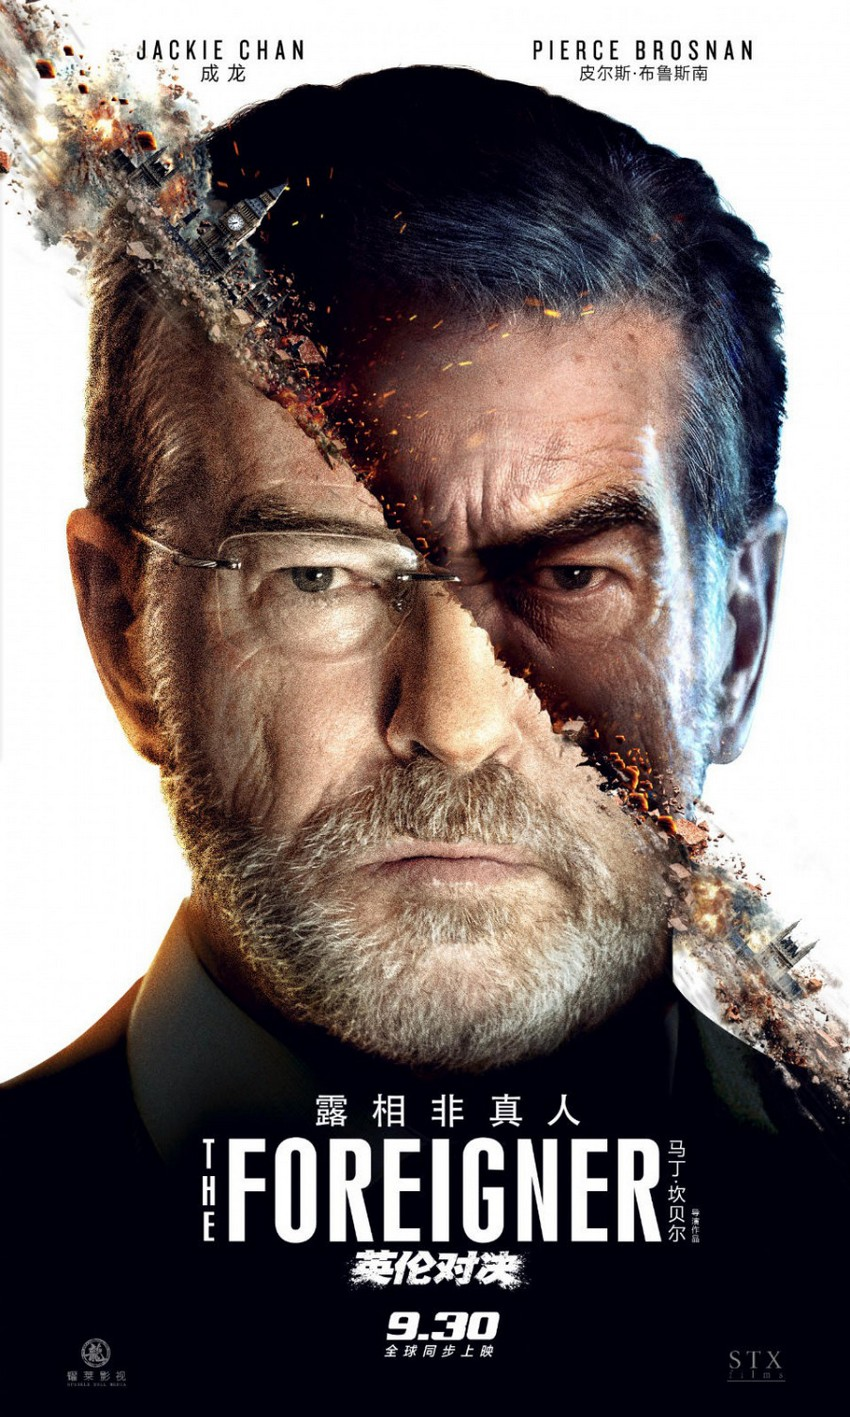 Jackie Chan faces off against Pierce Brosnan in final trailer for The Foreigner 7